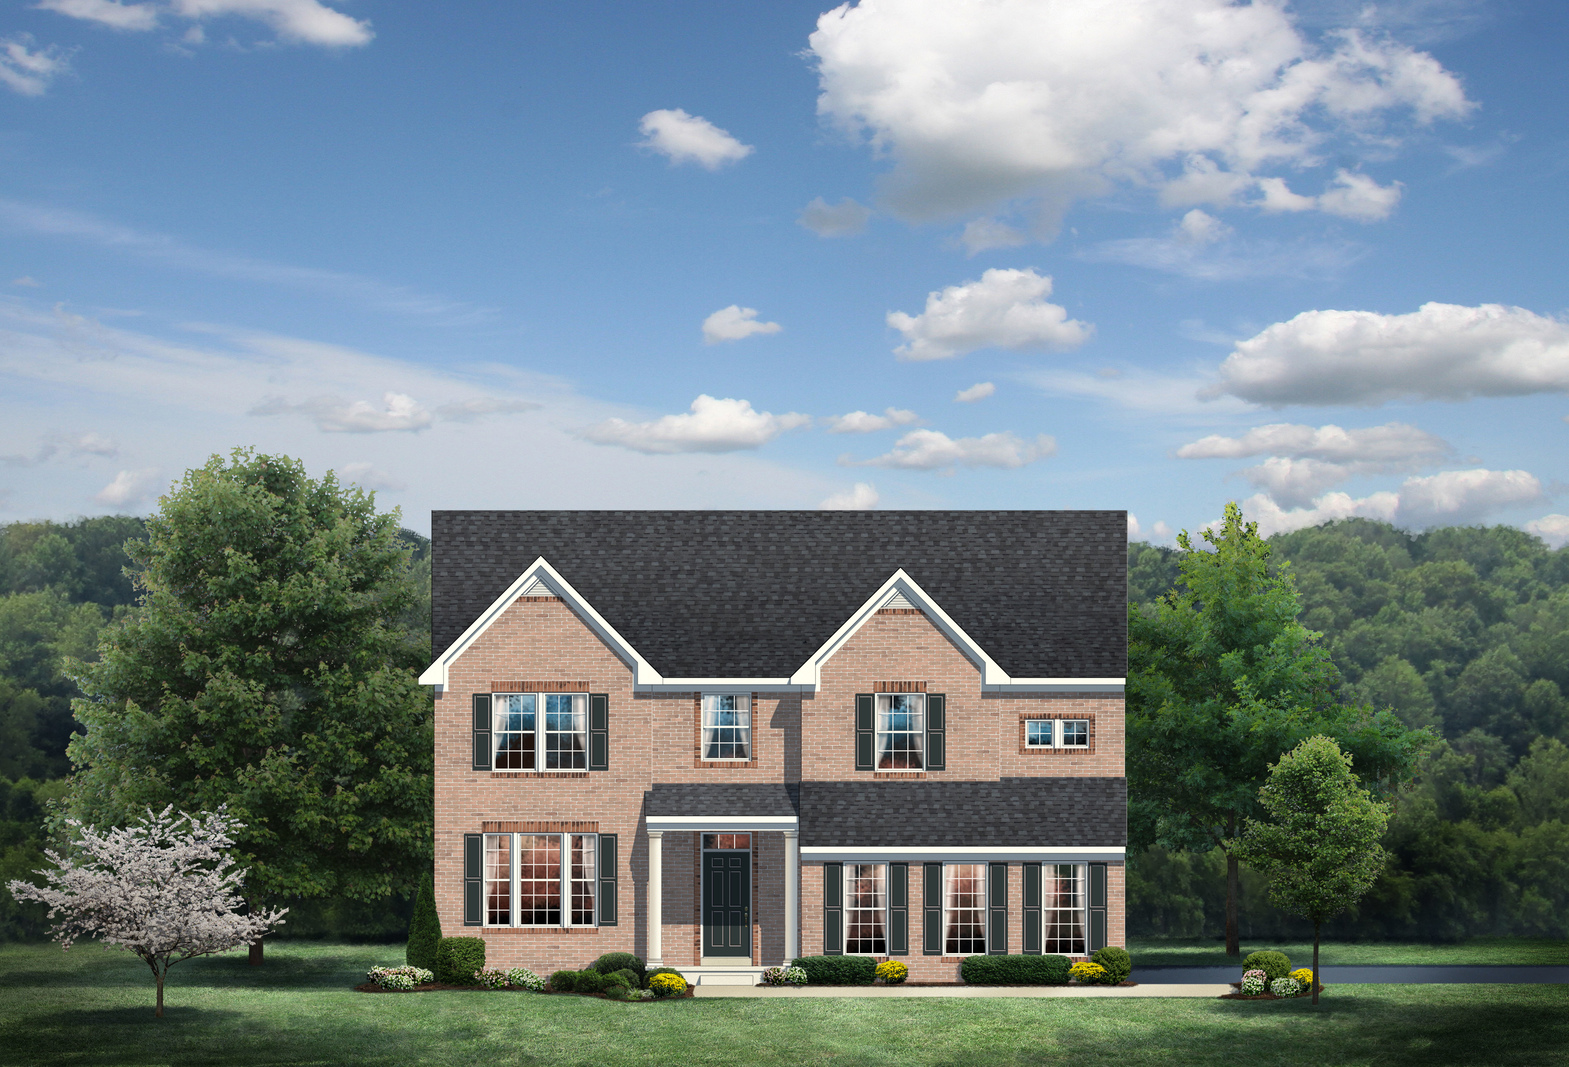 New dunkirk home model for sale heartland homes for Heartland homes pittsburgh floor plans